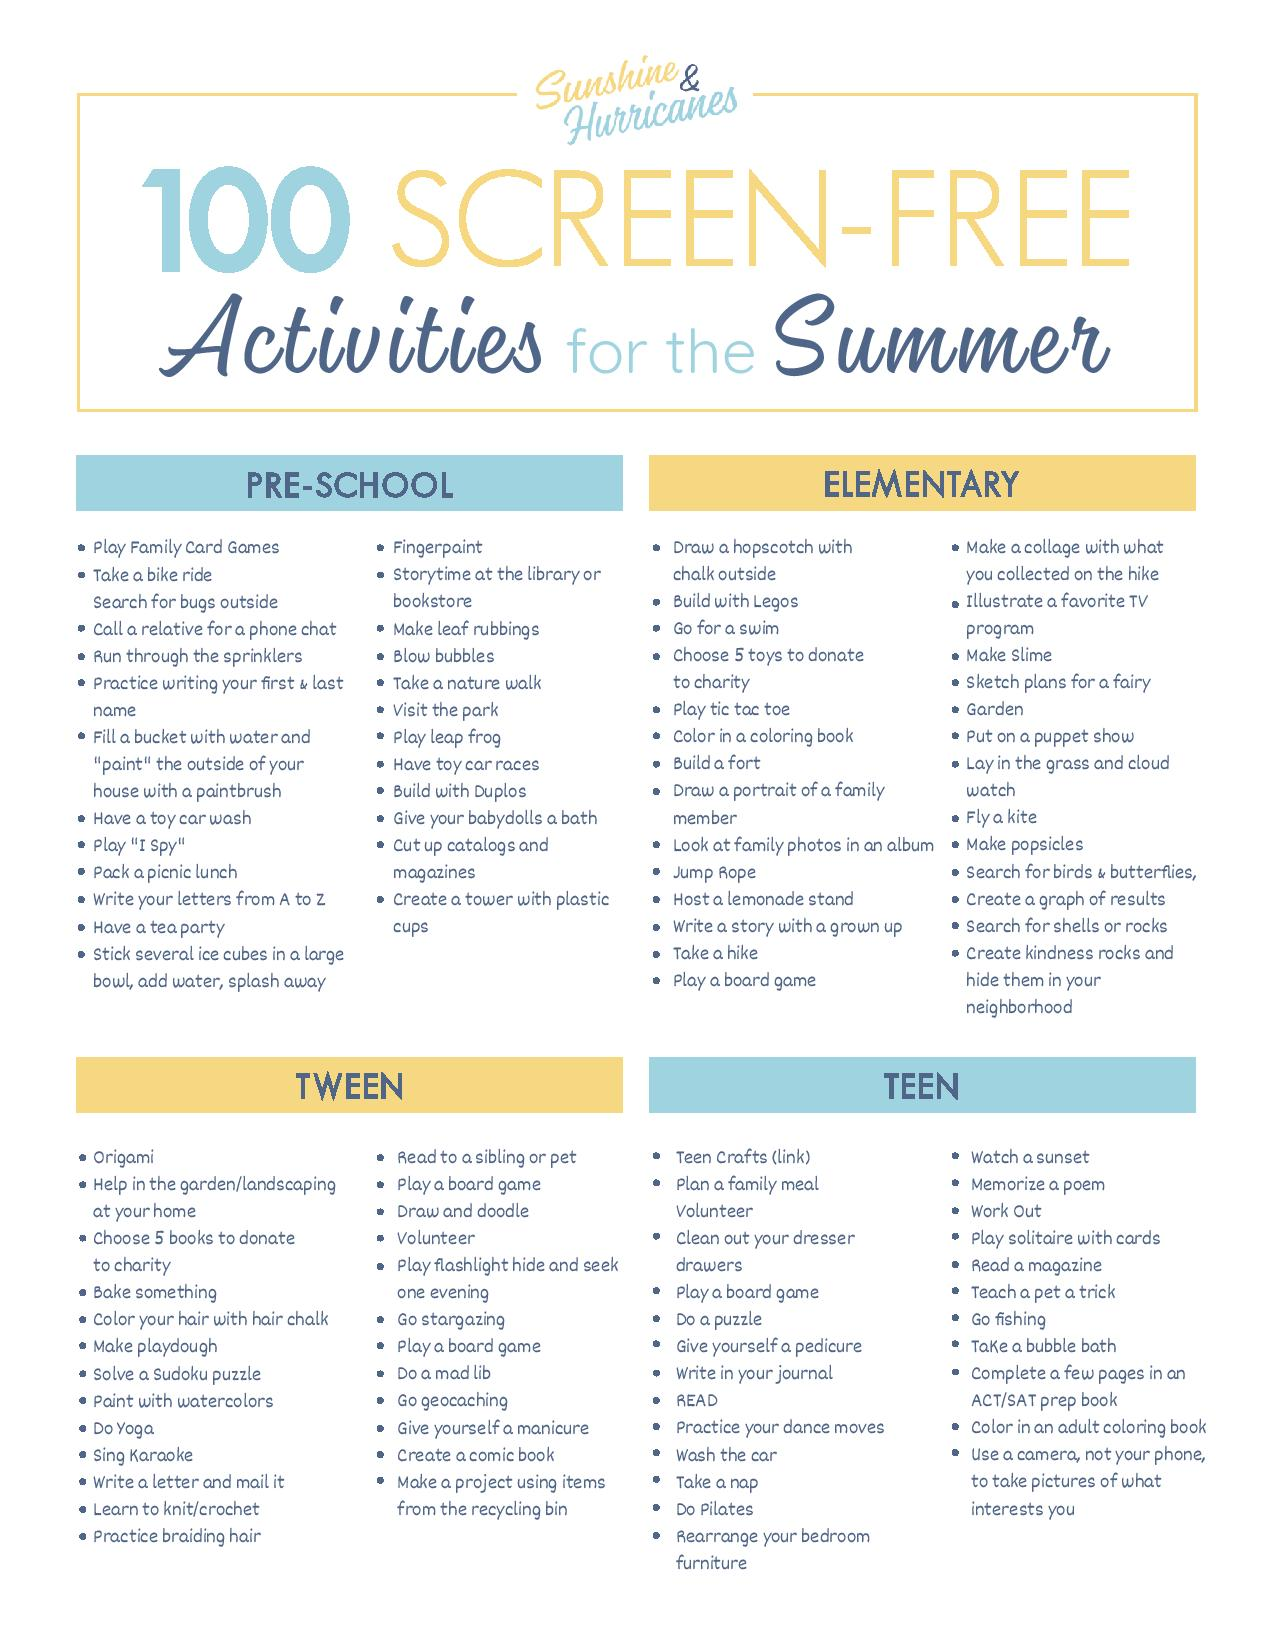 100 Screen Free Summer Activities For Kids